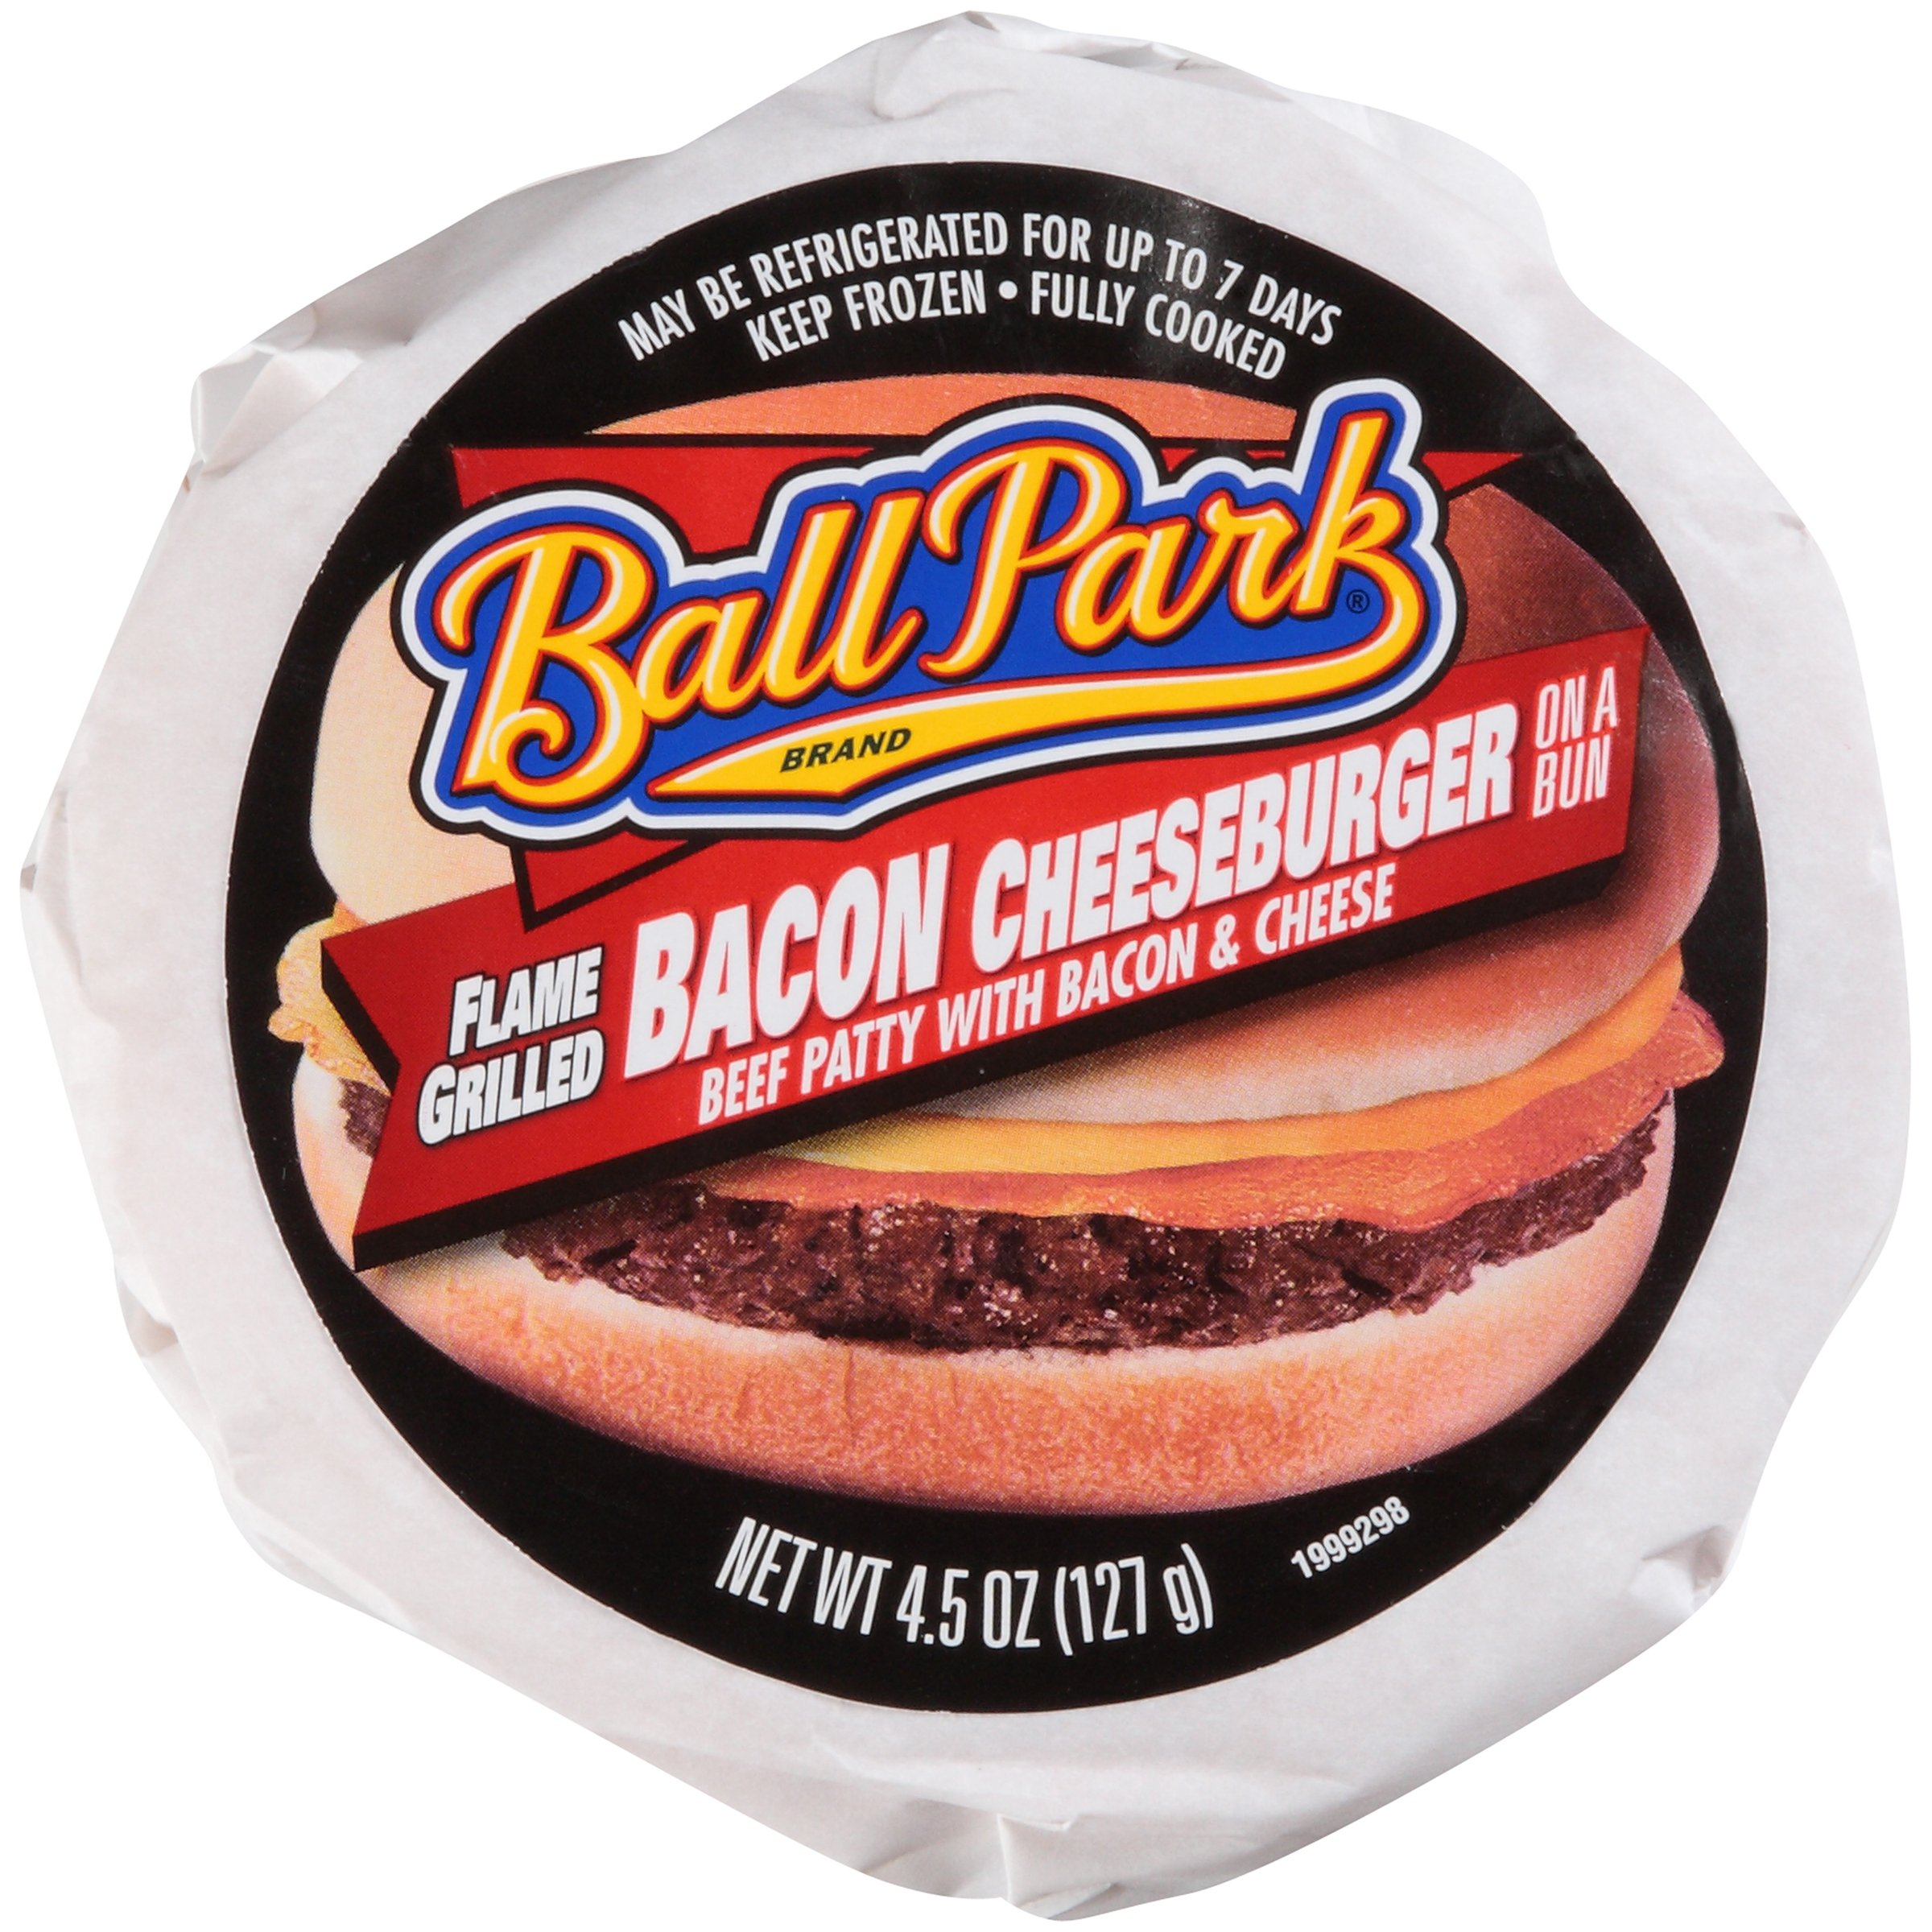 Ball Park Bacon Cheeseburger Sandwich 4.5 oz-Pack of 12 by Ball Park